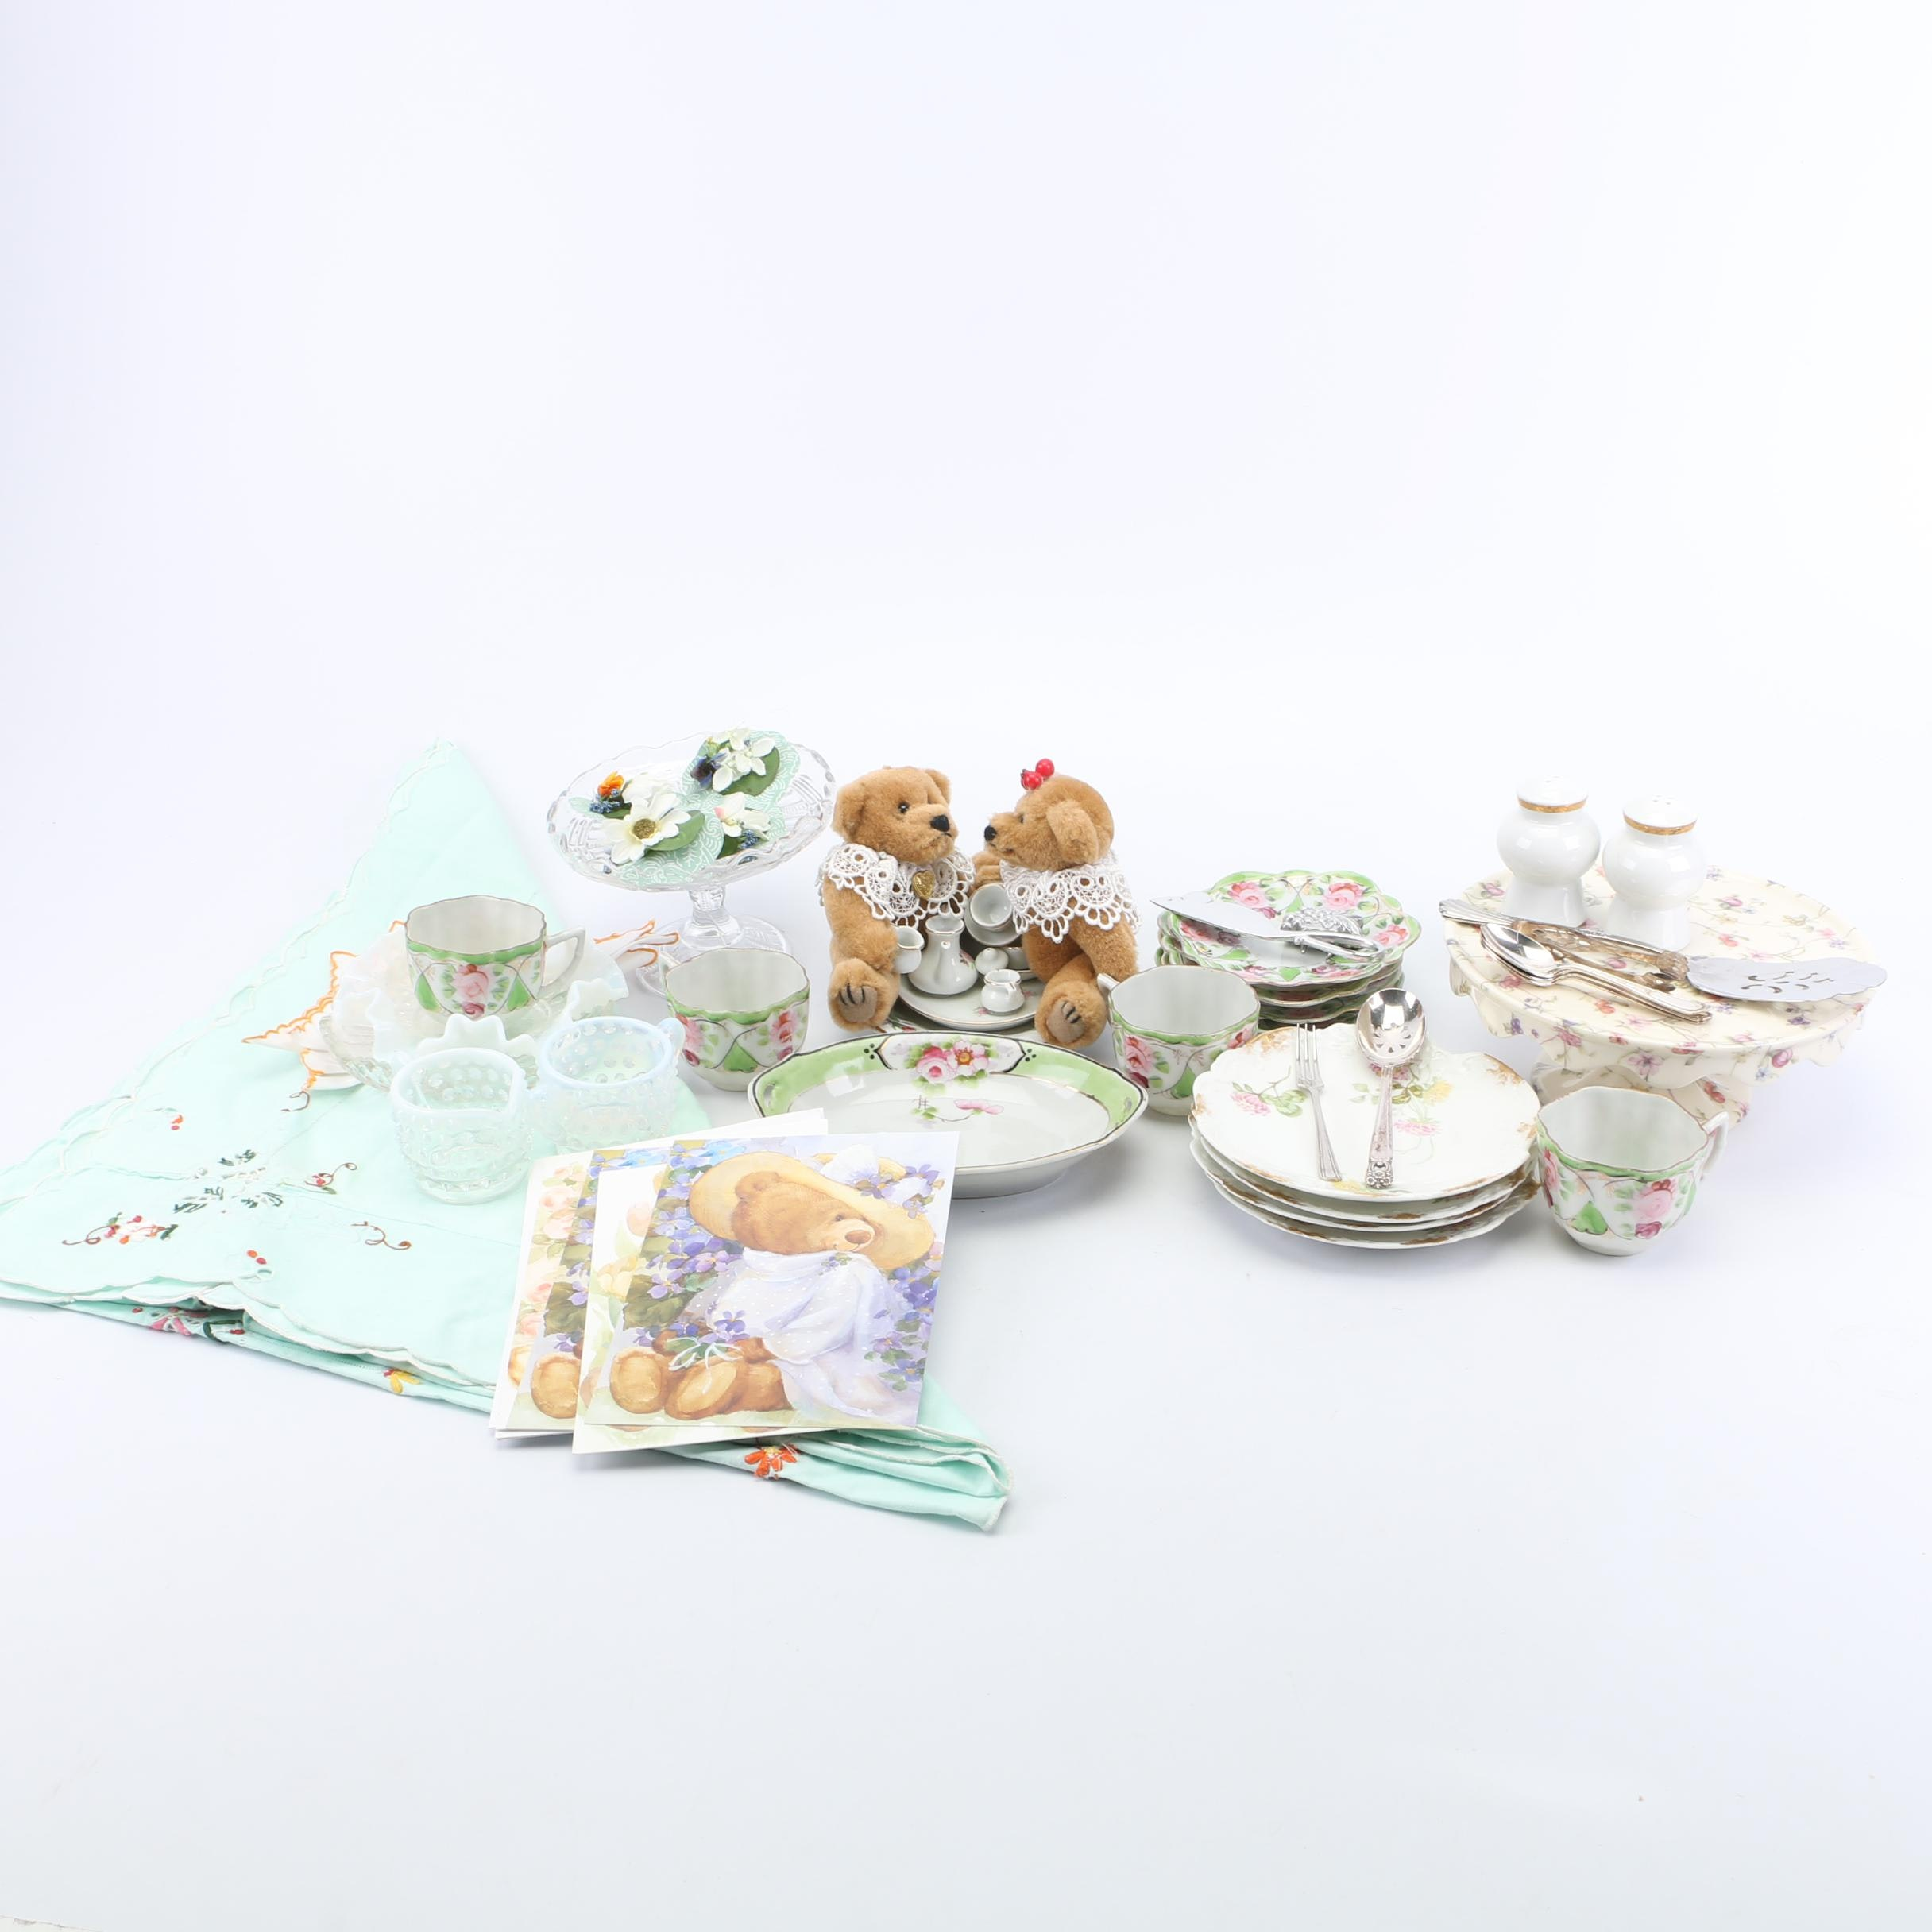 Tableware Including Antique Delinières Porcelain Plates with Lynn's Teddy Bears